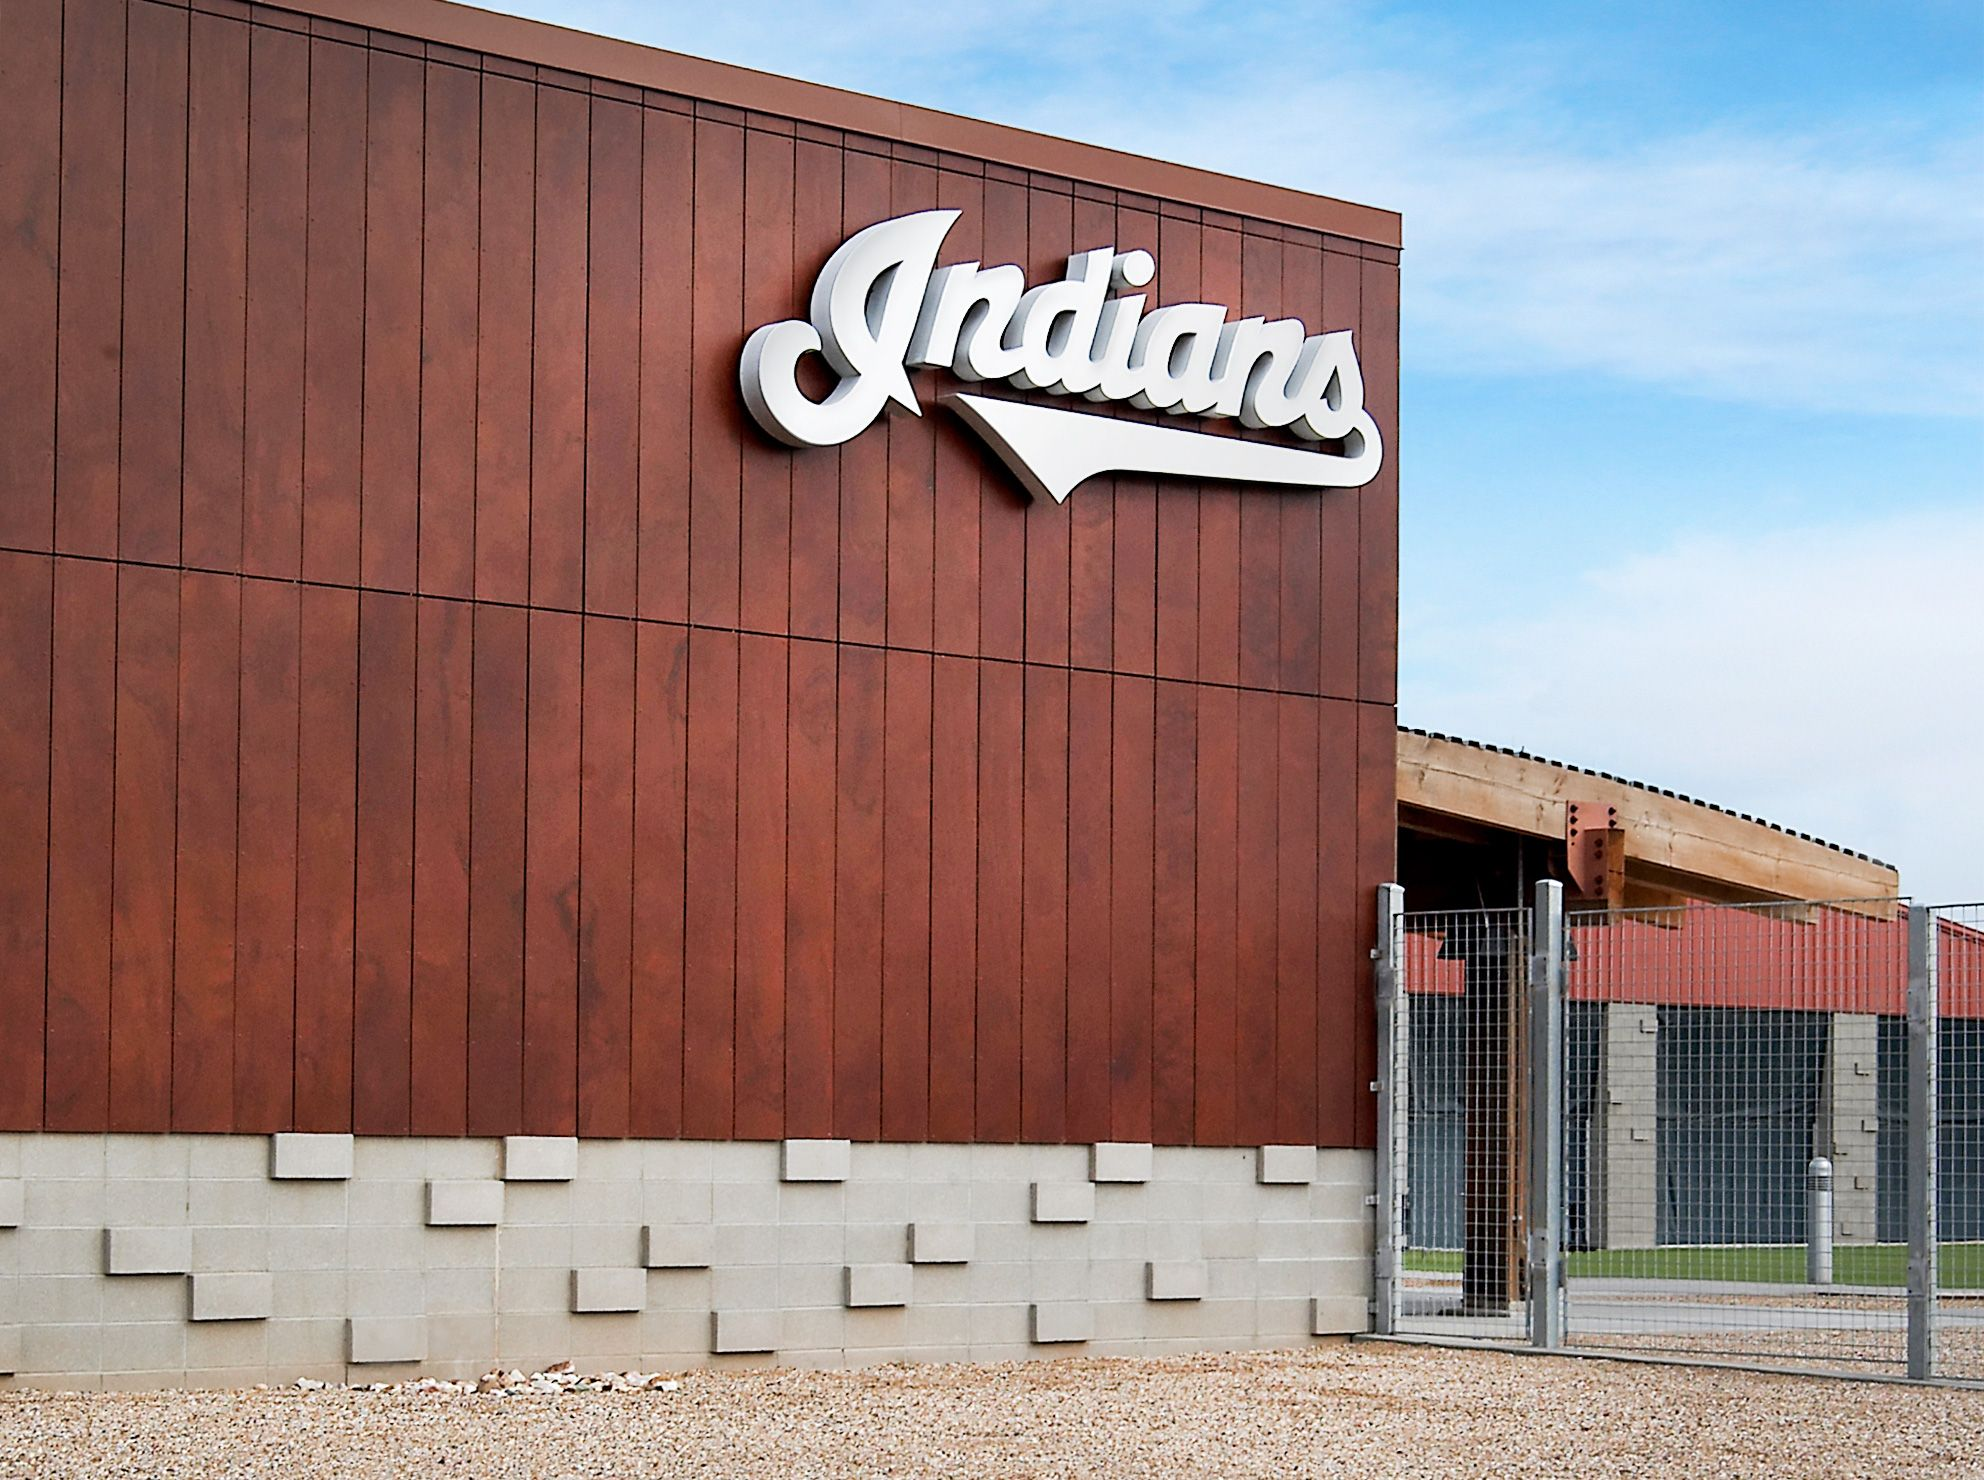 the indians brand is mounted to a synthetic wood veneer panel system